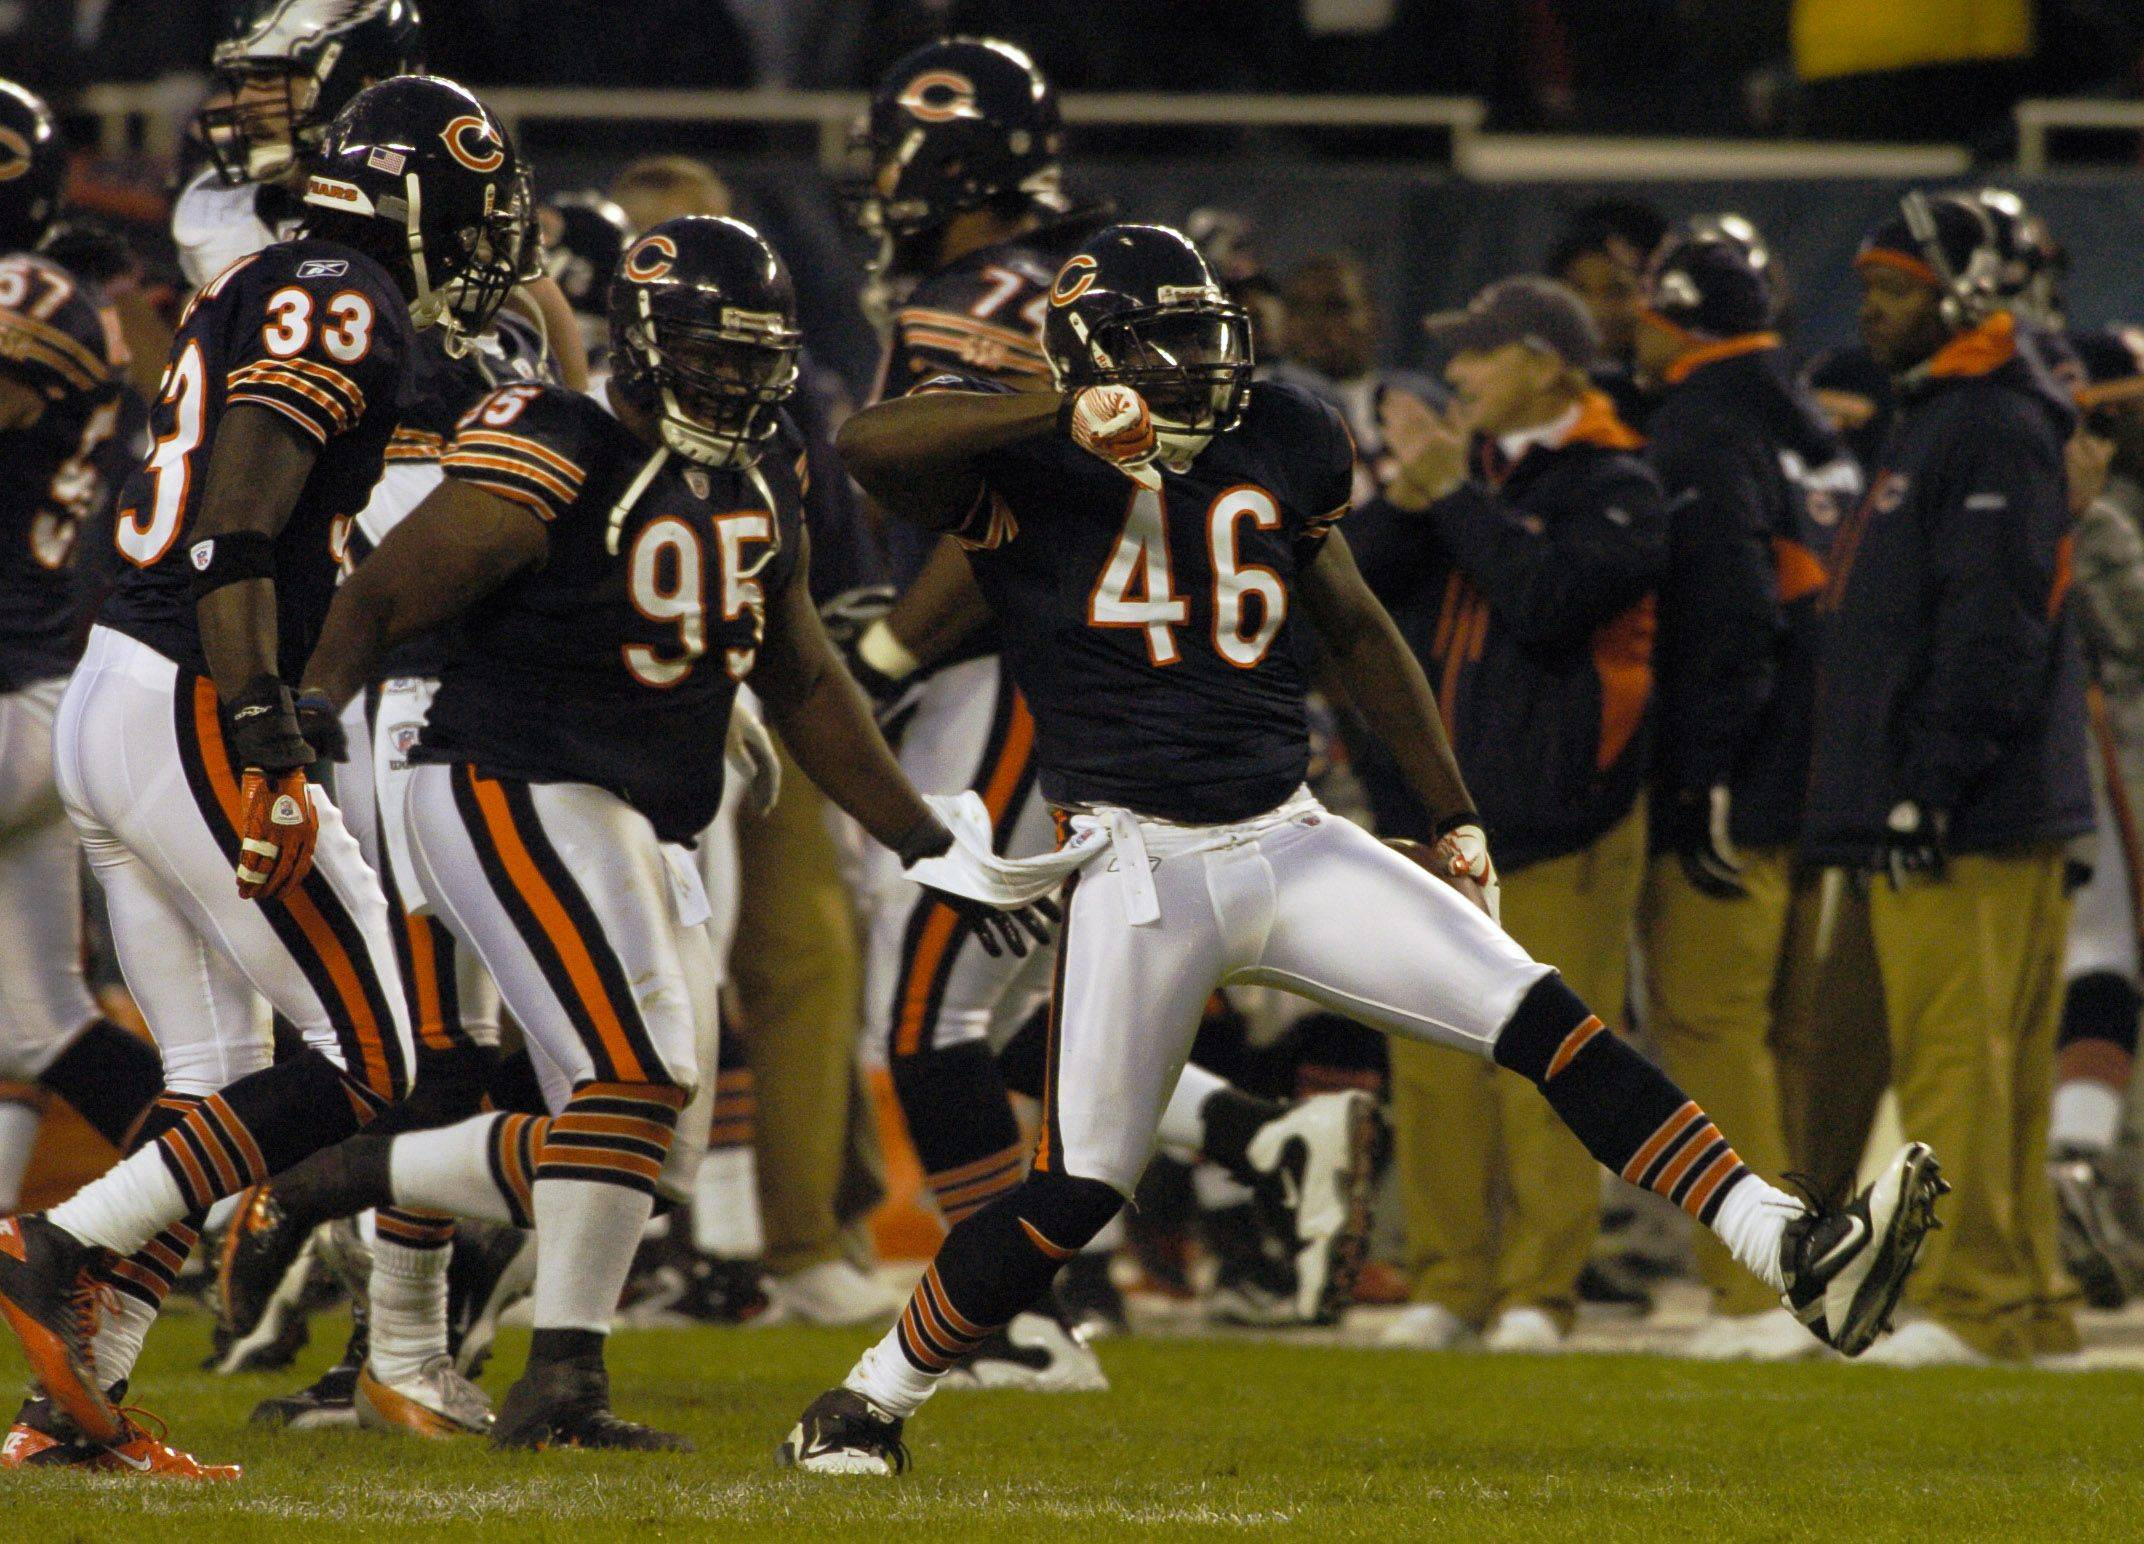 Chicago Bears safety Chris Harris celebrates after intercepting the ball during the first half of the Bears 31-26 win at Soldier Field.